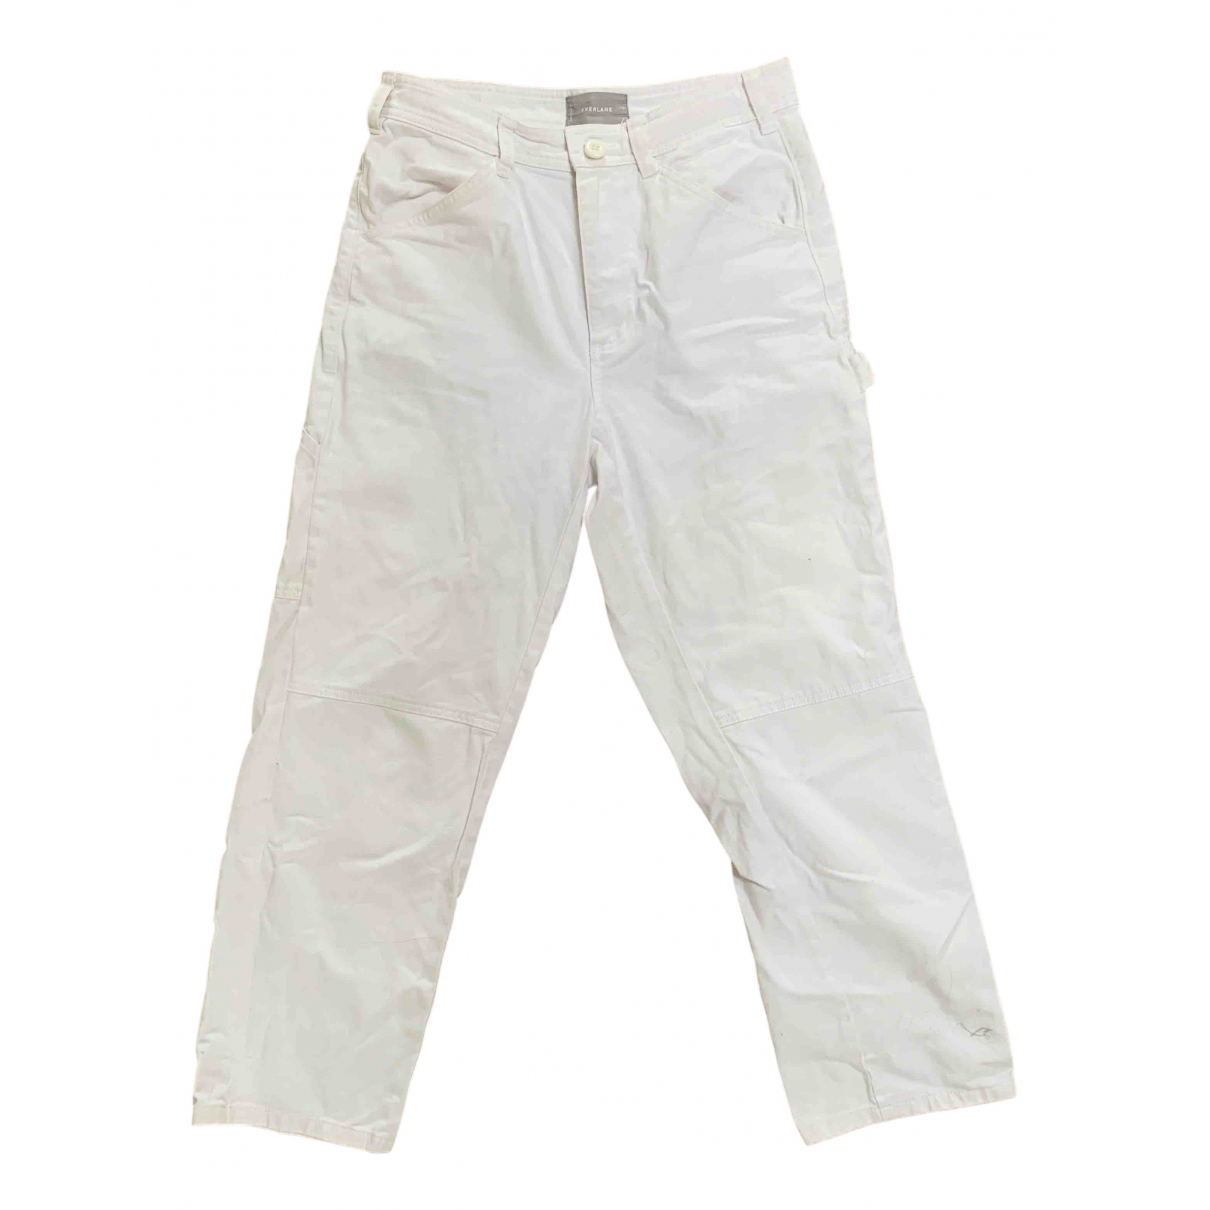 Everlane \N White Cotton Trousers for Women 6 US